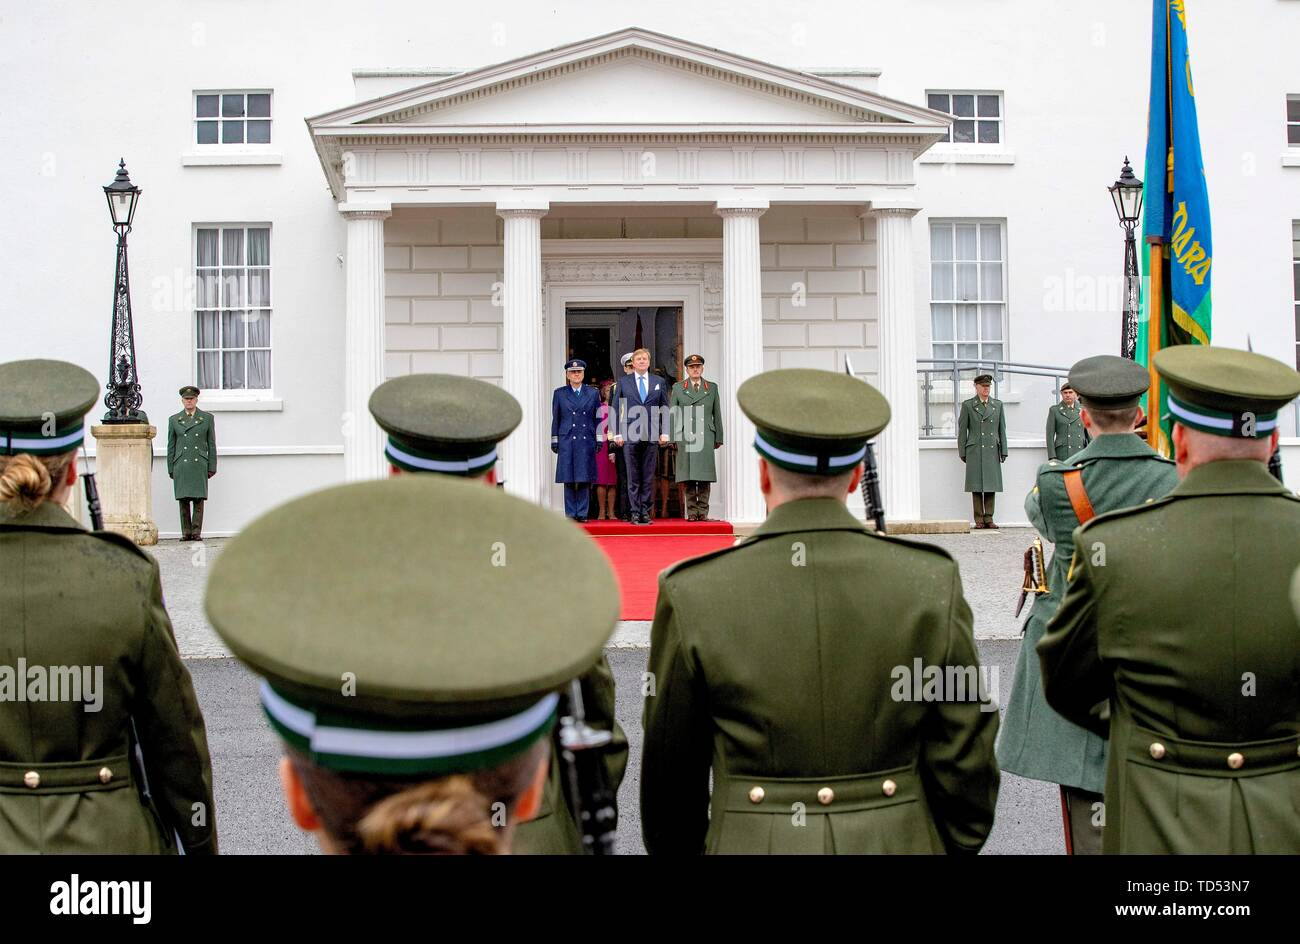 Dublin, Ireland. 12th June, 2019. King Willem-Alexander of The Netherlands received by President Higgins and his wife Sabina Higgins at A?ras an Uachtara?in, the Presidential Palace in Dublin, on June 12, 2019, during the welcome ceremony at the 1st of a 3 days State-visit to Ireland Photo : Albert Nieboer/ Netherlands OUT/Point de Vue OUT | Credit: dpa/Alamy Live News - Stock Image